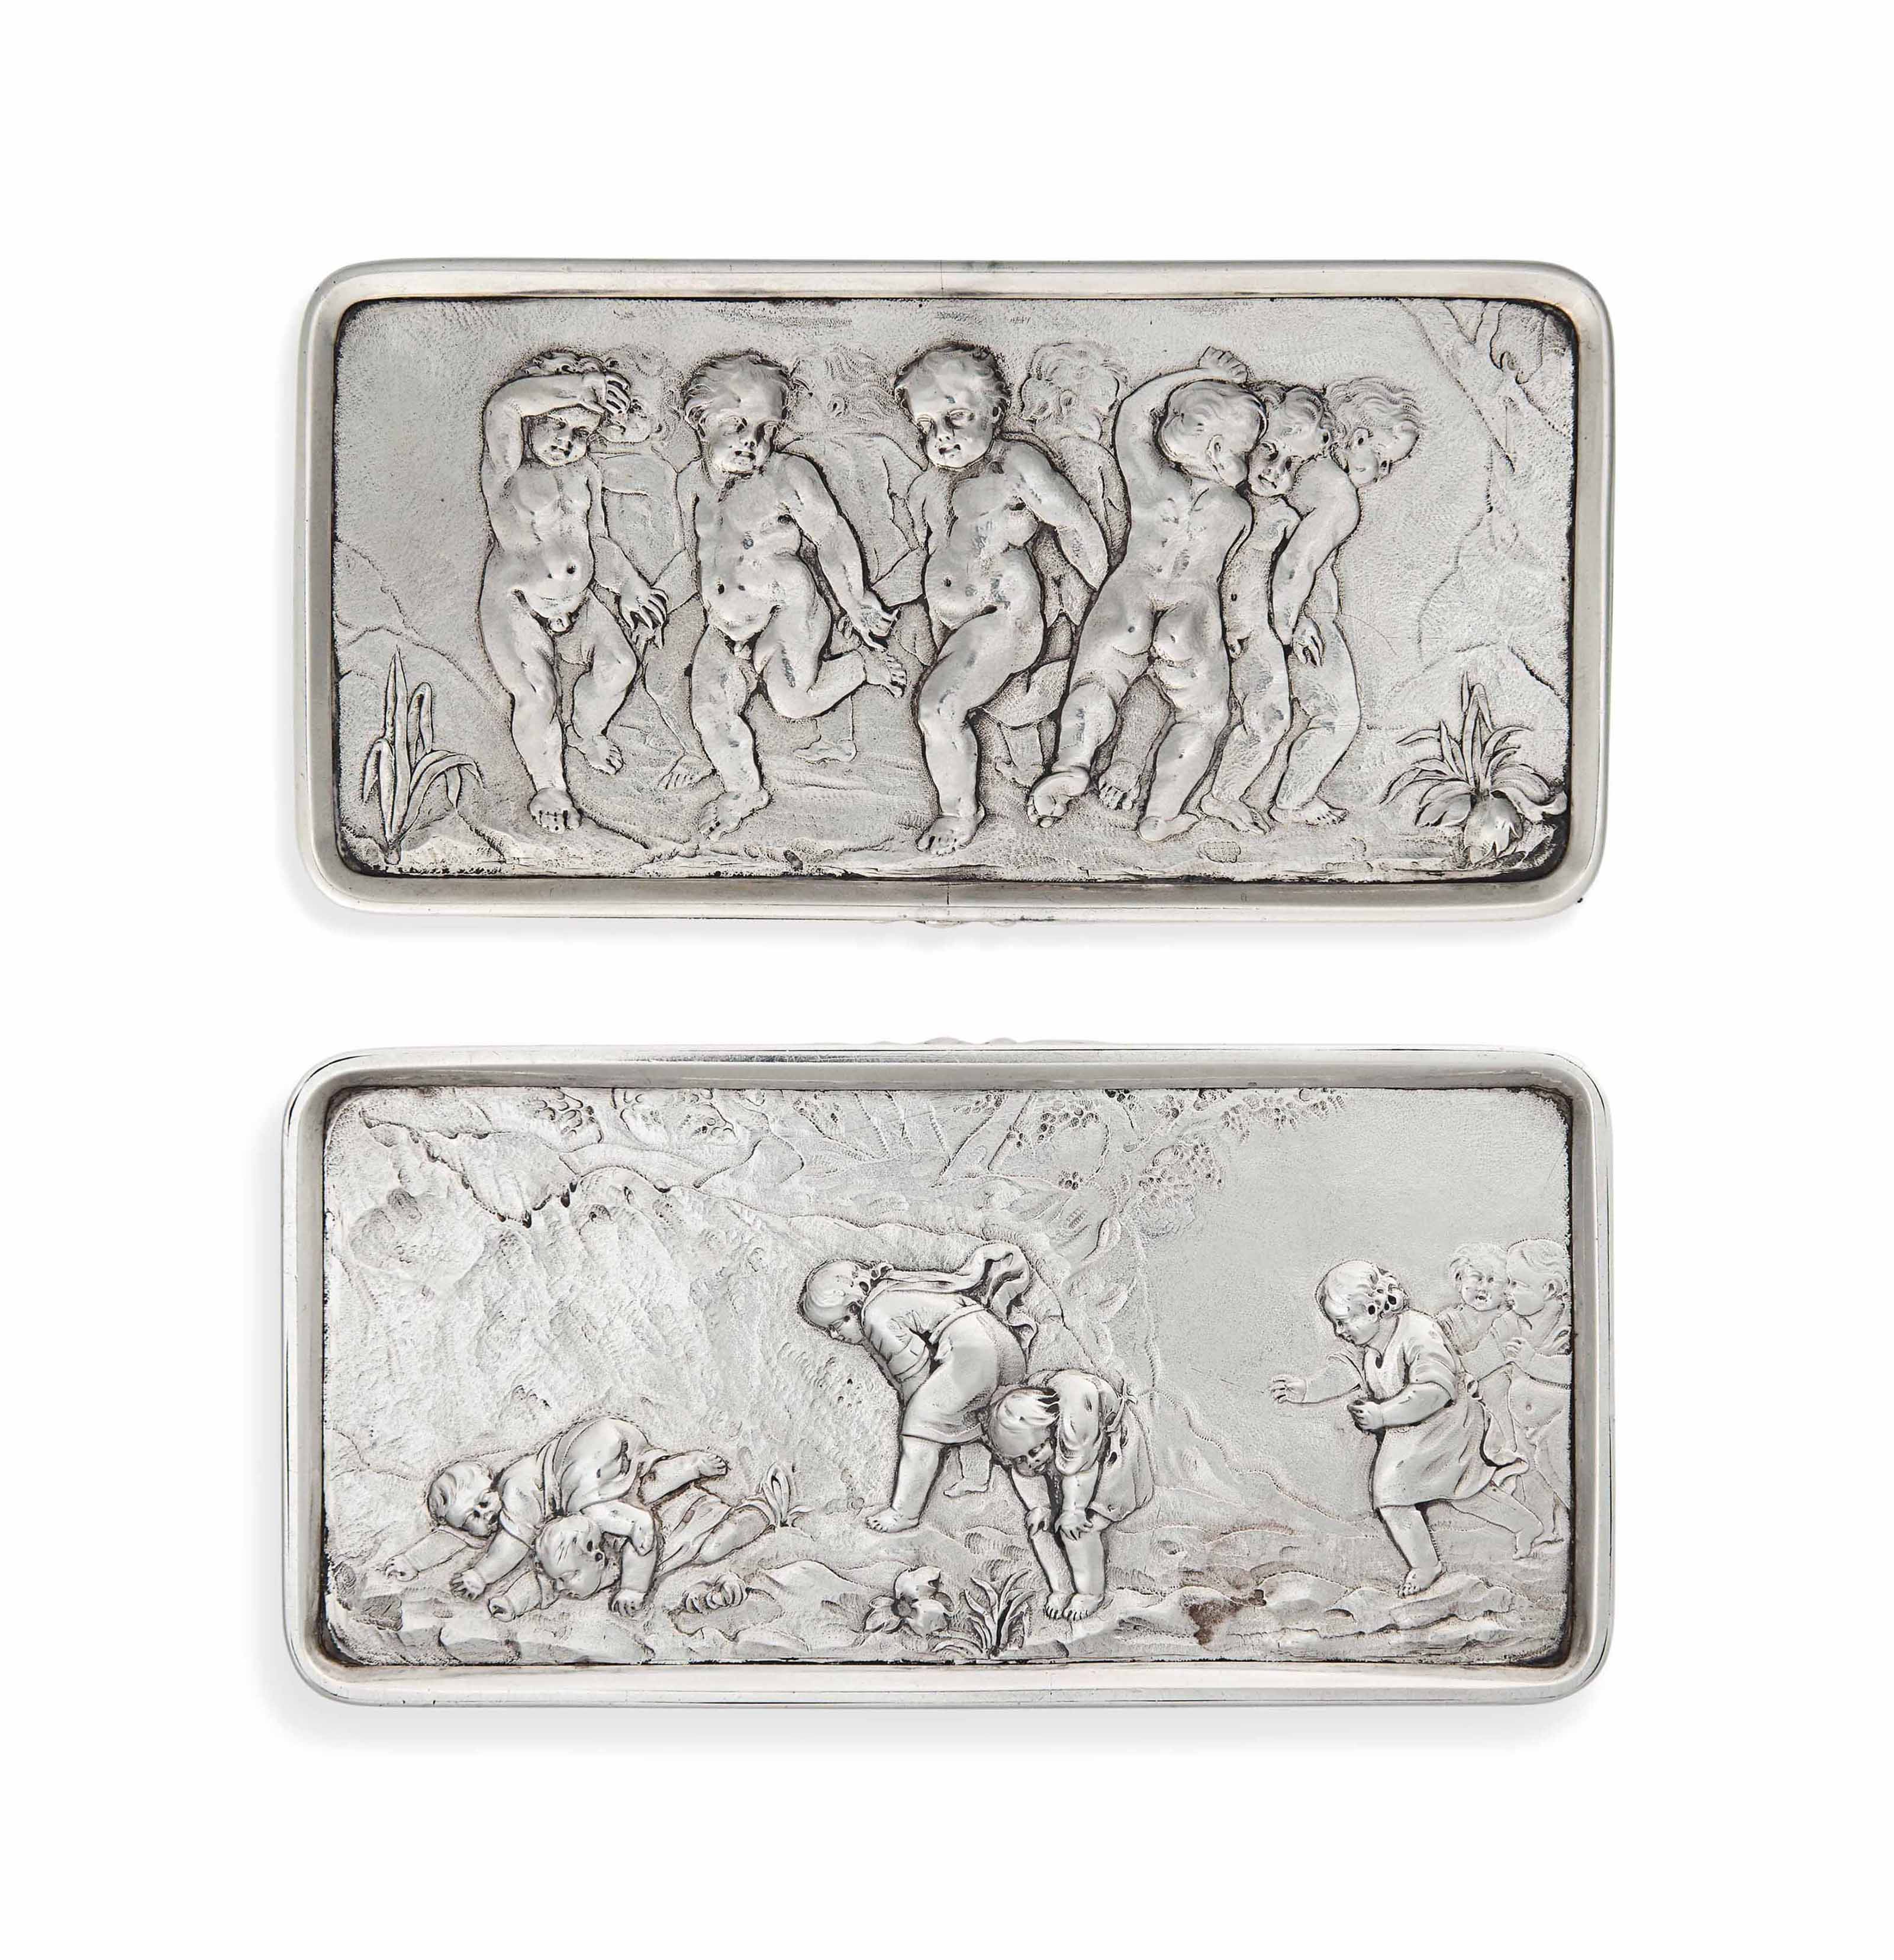 A GEORGE IV SILVER TABLE SNUFF BOX